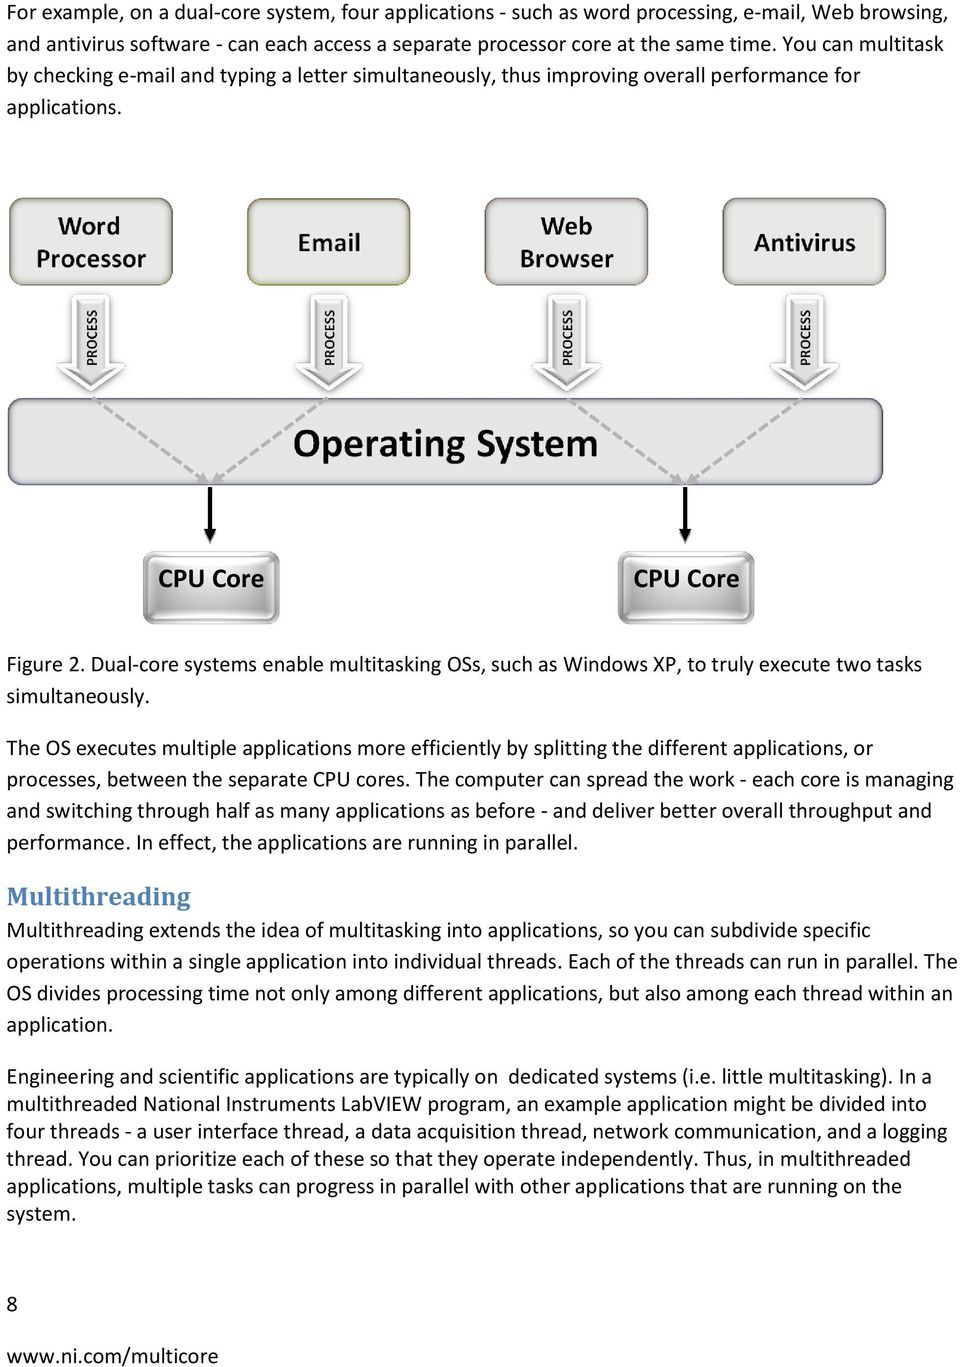 Dual-core systems enable multitasking OSs, such as Windows XP, to truly execute two tasks simultaneously.